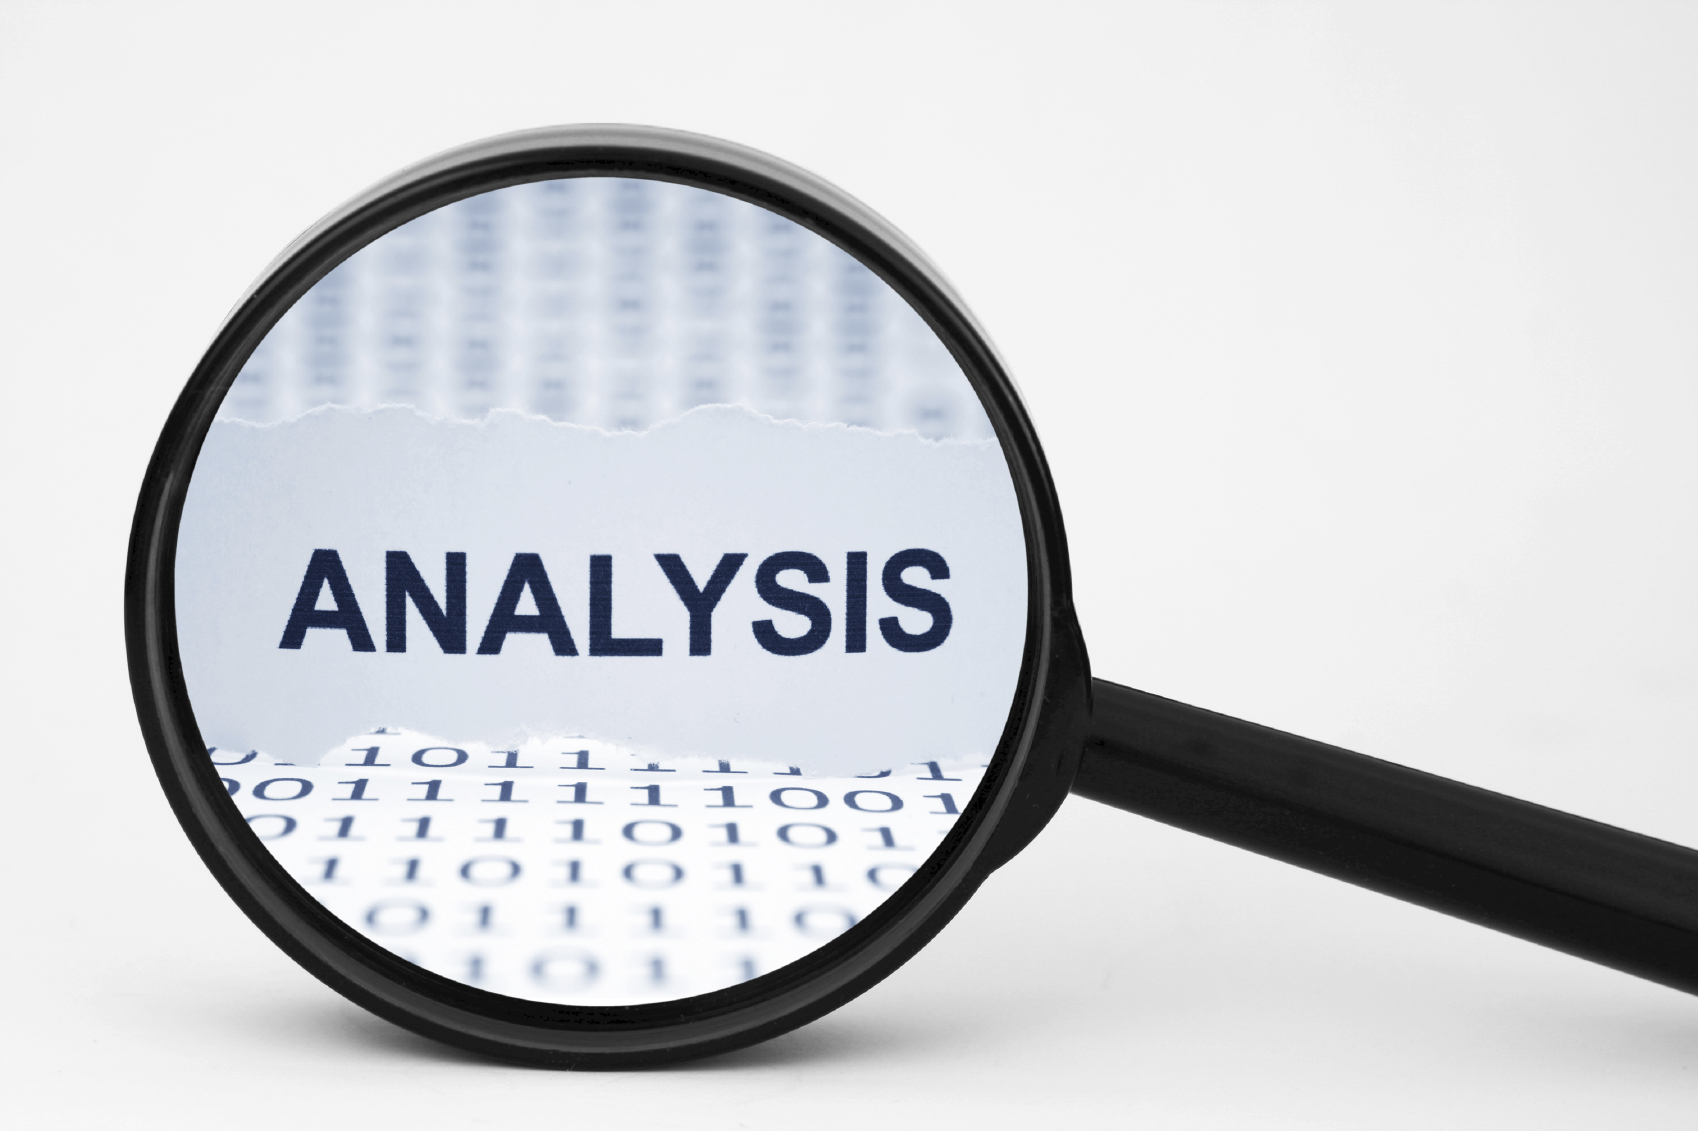 content analysis an examination of web based The content analysis unlike statistical analysis does not measure or quantify patterns it is based on interpreting opinions and perspectives of various subjects content analysis takes into following elements when analyzing issues.